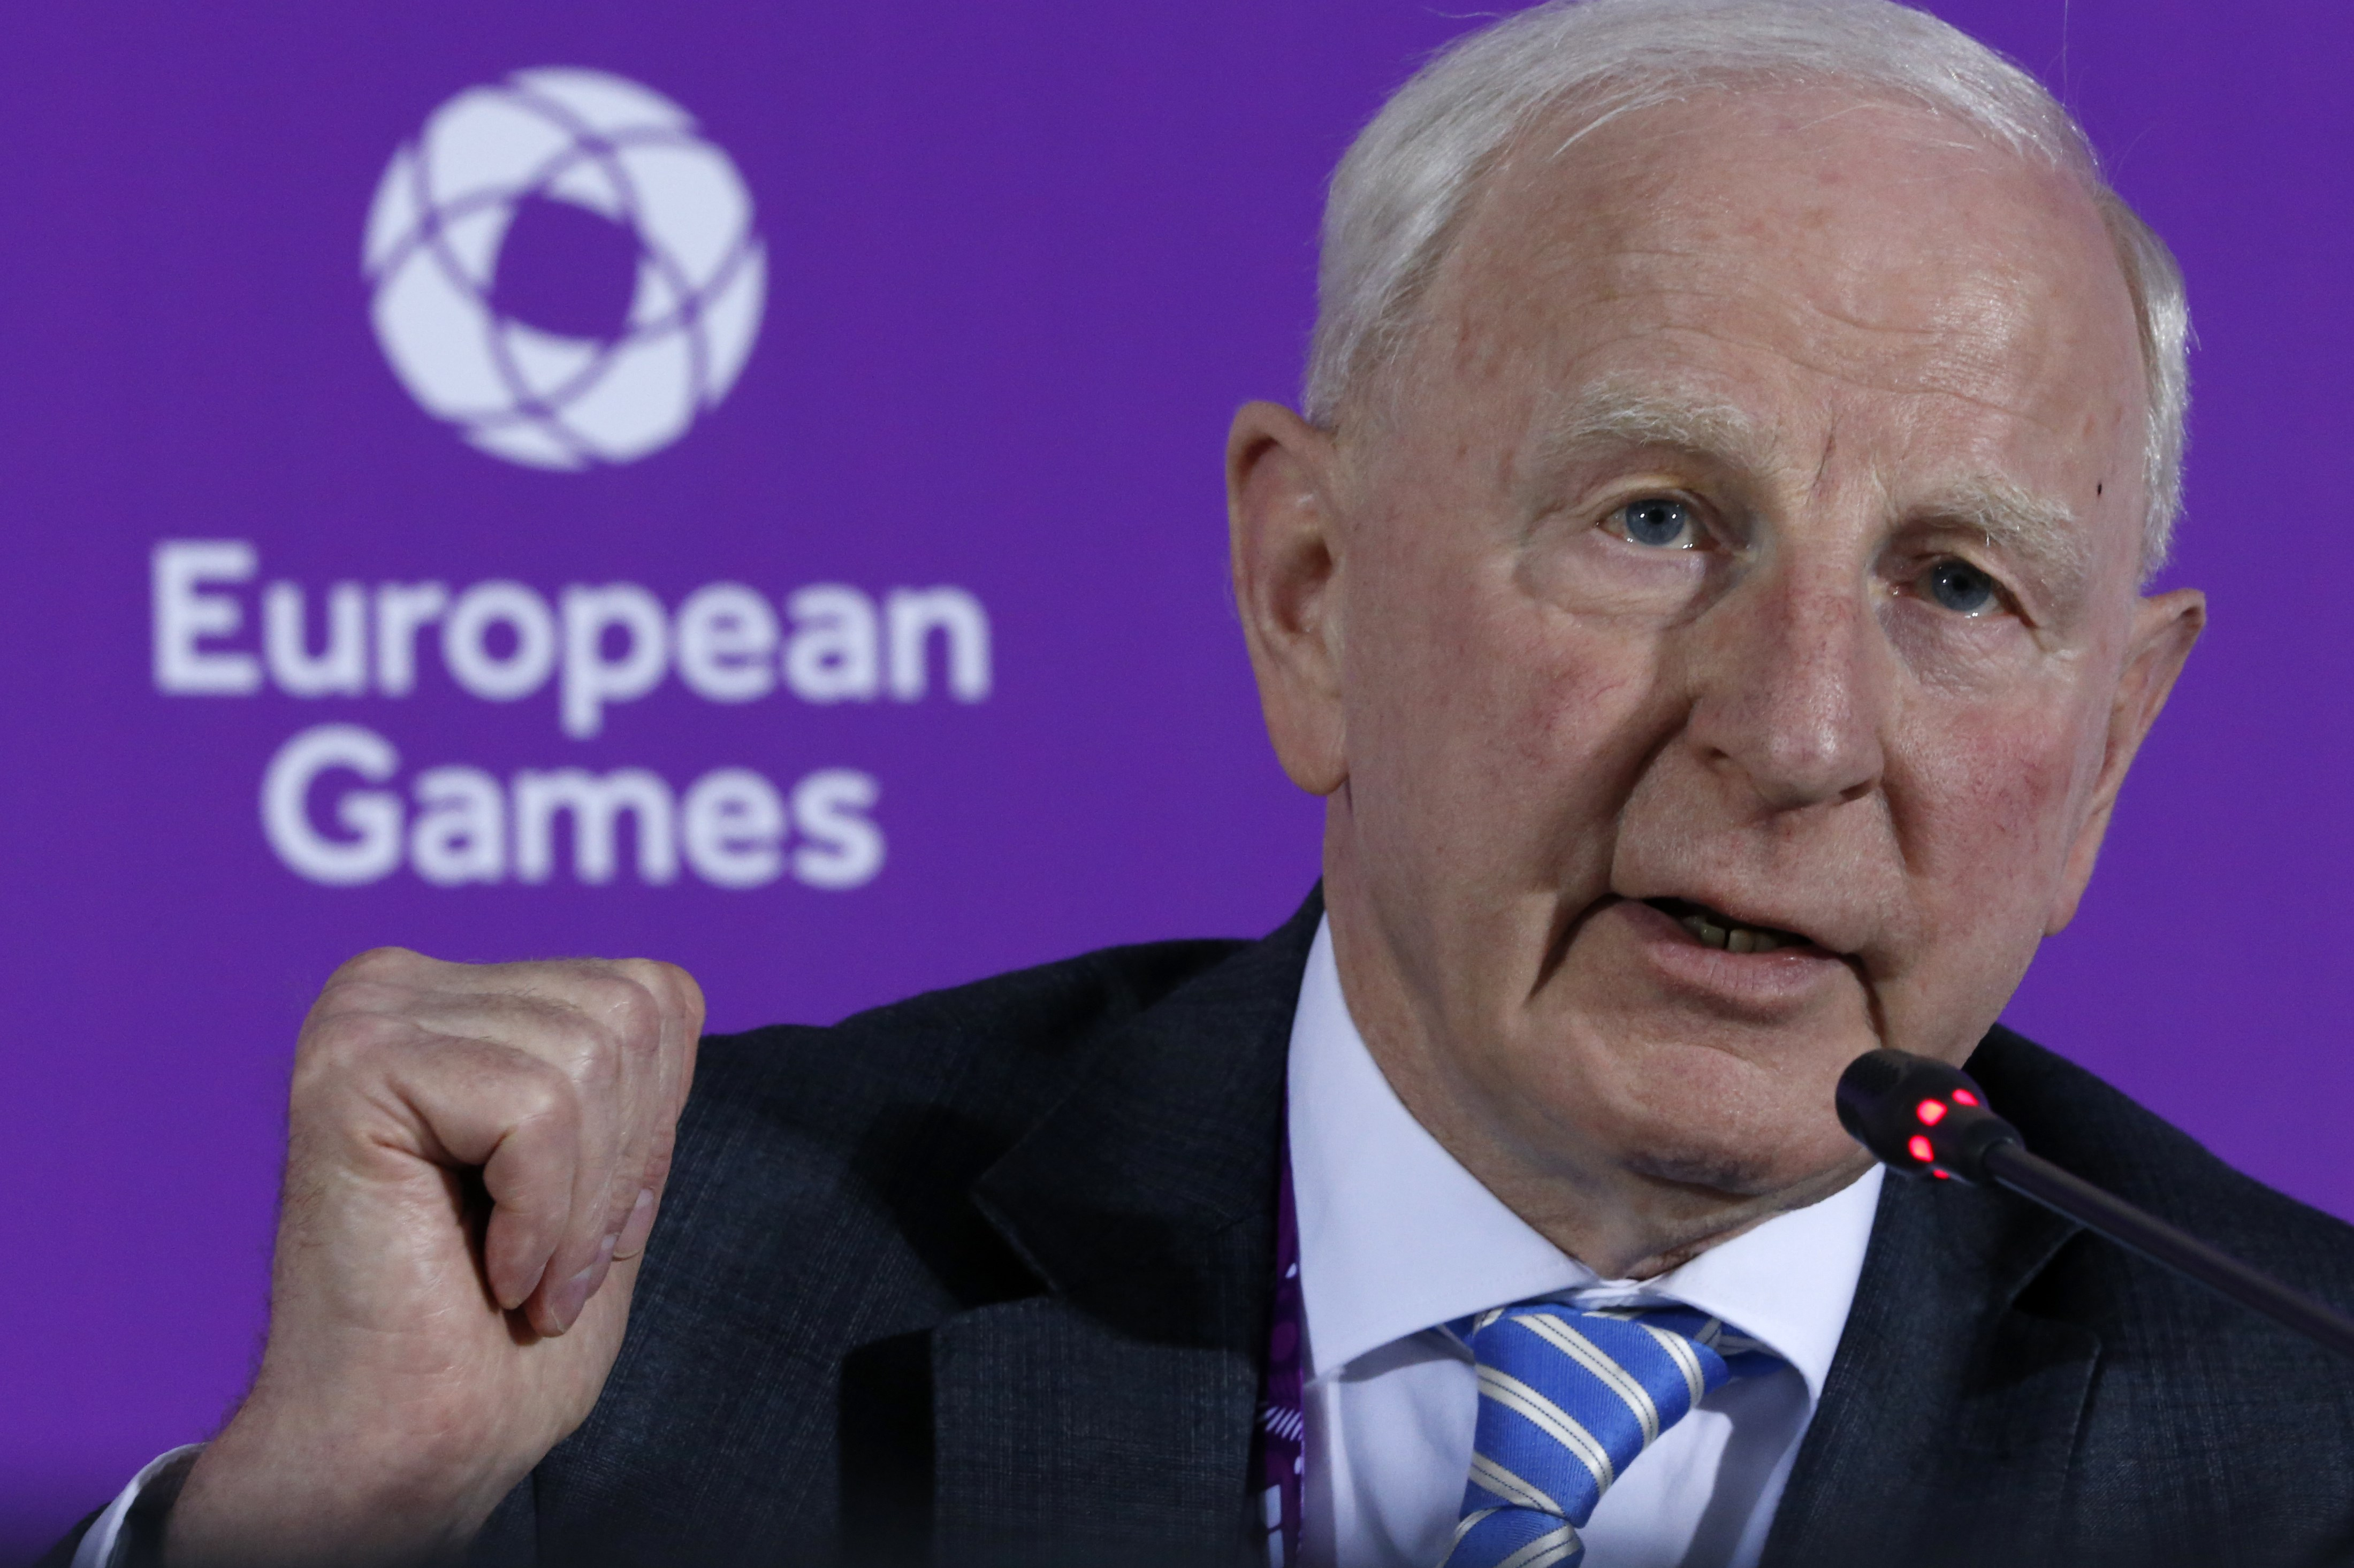 FILE - In this June 11, 2015 file photo, Patrick Hickey, the head of the European Olympic Committee speaks during a news conference on the eve of the opening of the 2015 European Games in Baku, Azerbaijan. Rio de Janeiro authorities have issued an arrest